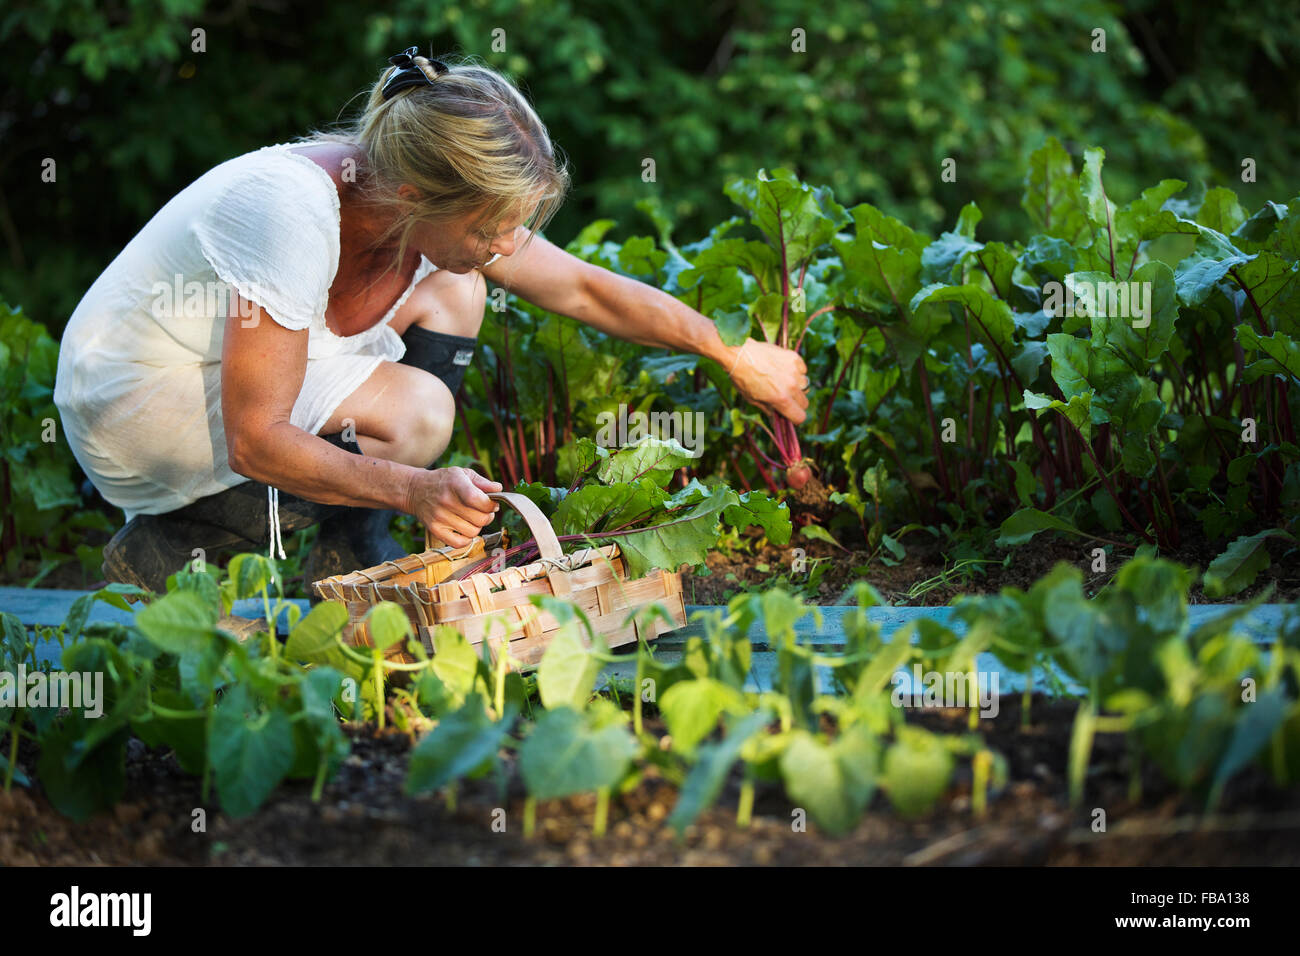 Sweden, Ostergotland, Mature woman harvesting vegetables - Stock Image